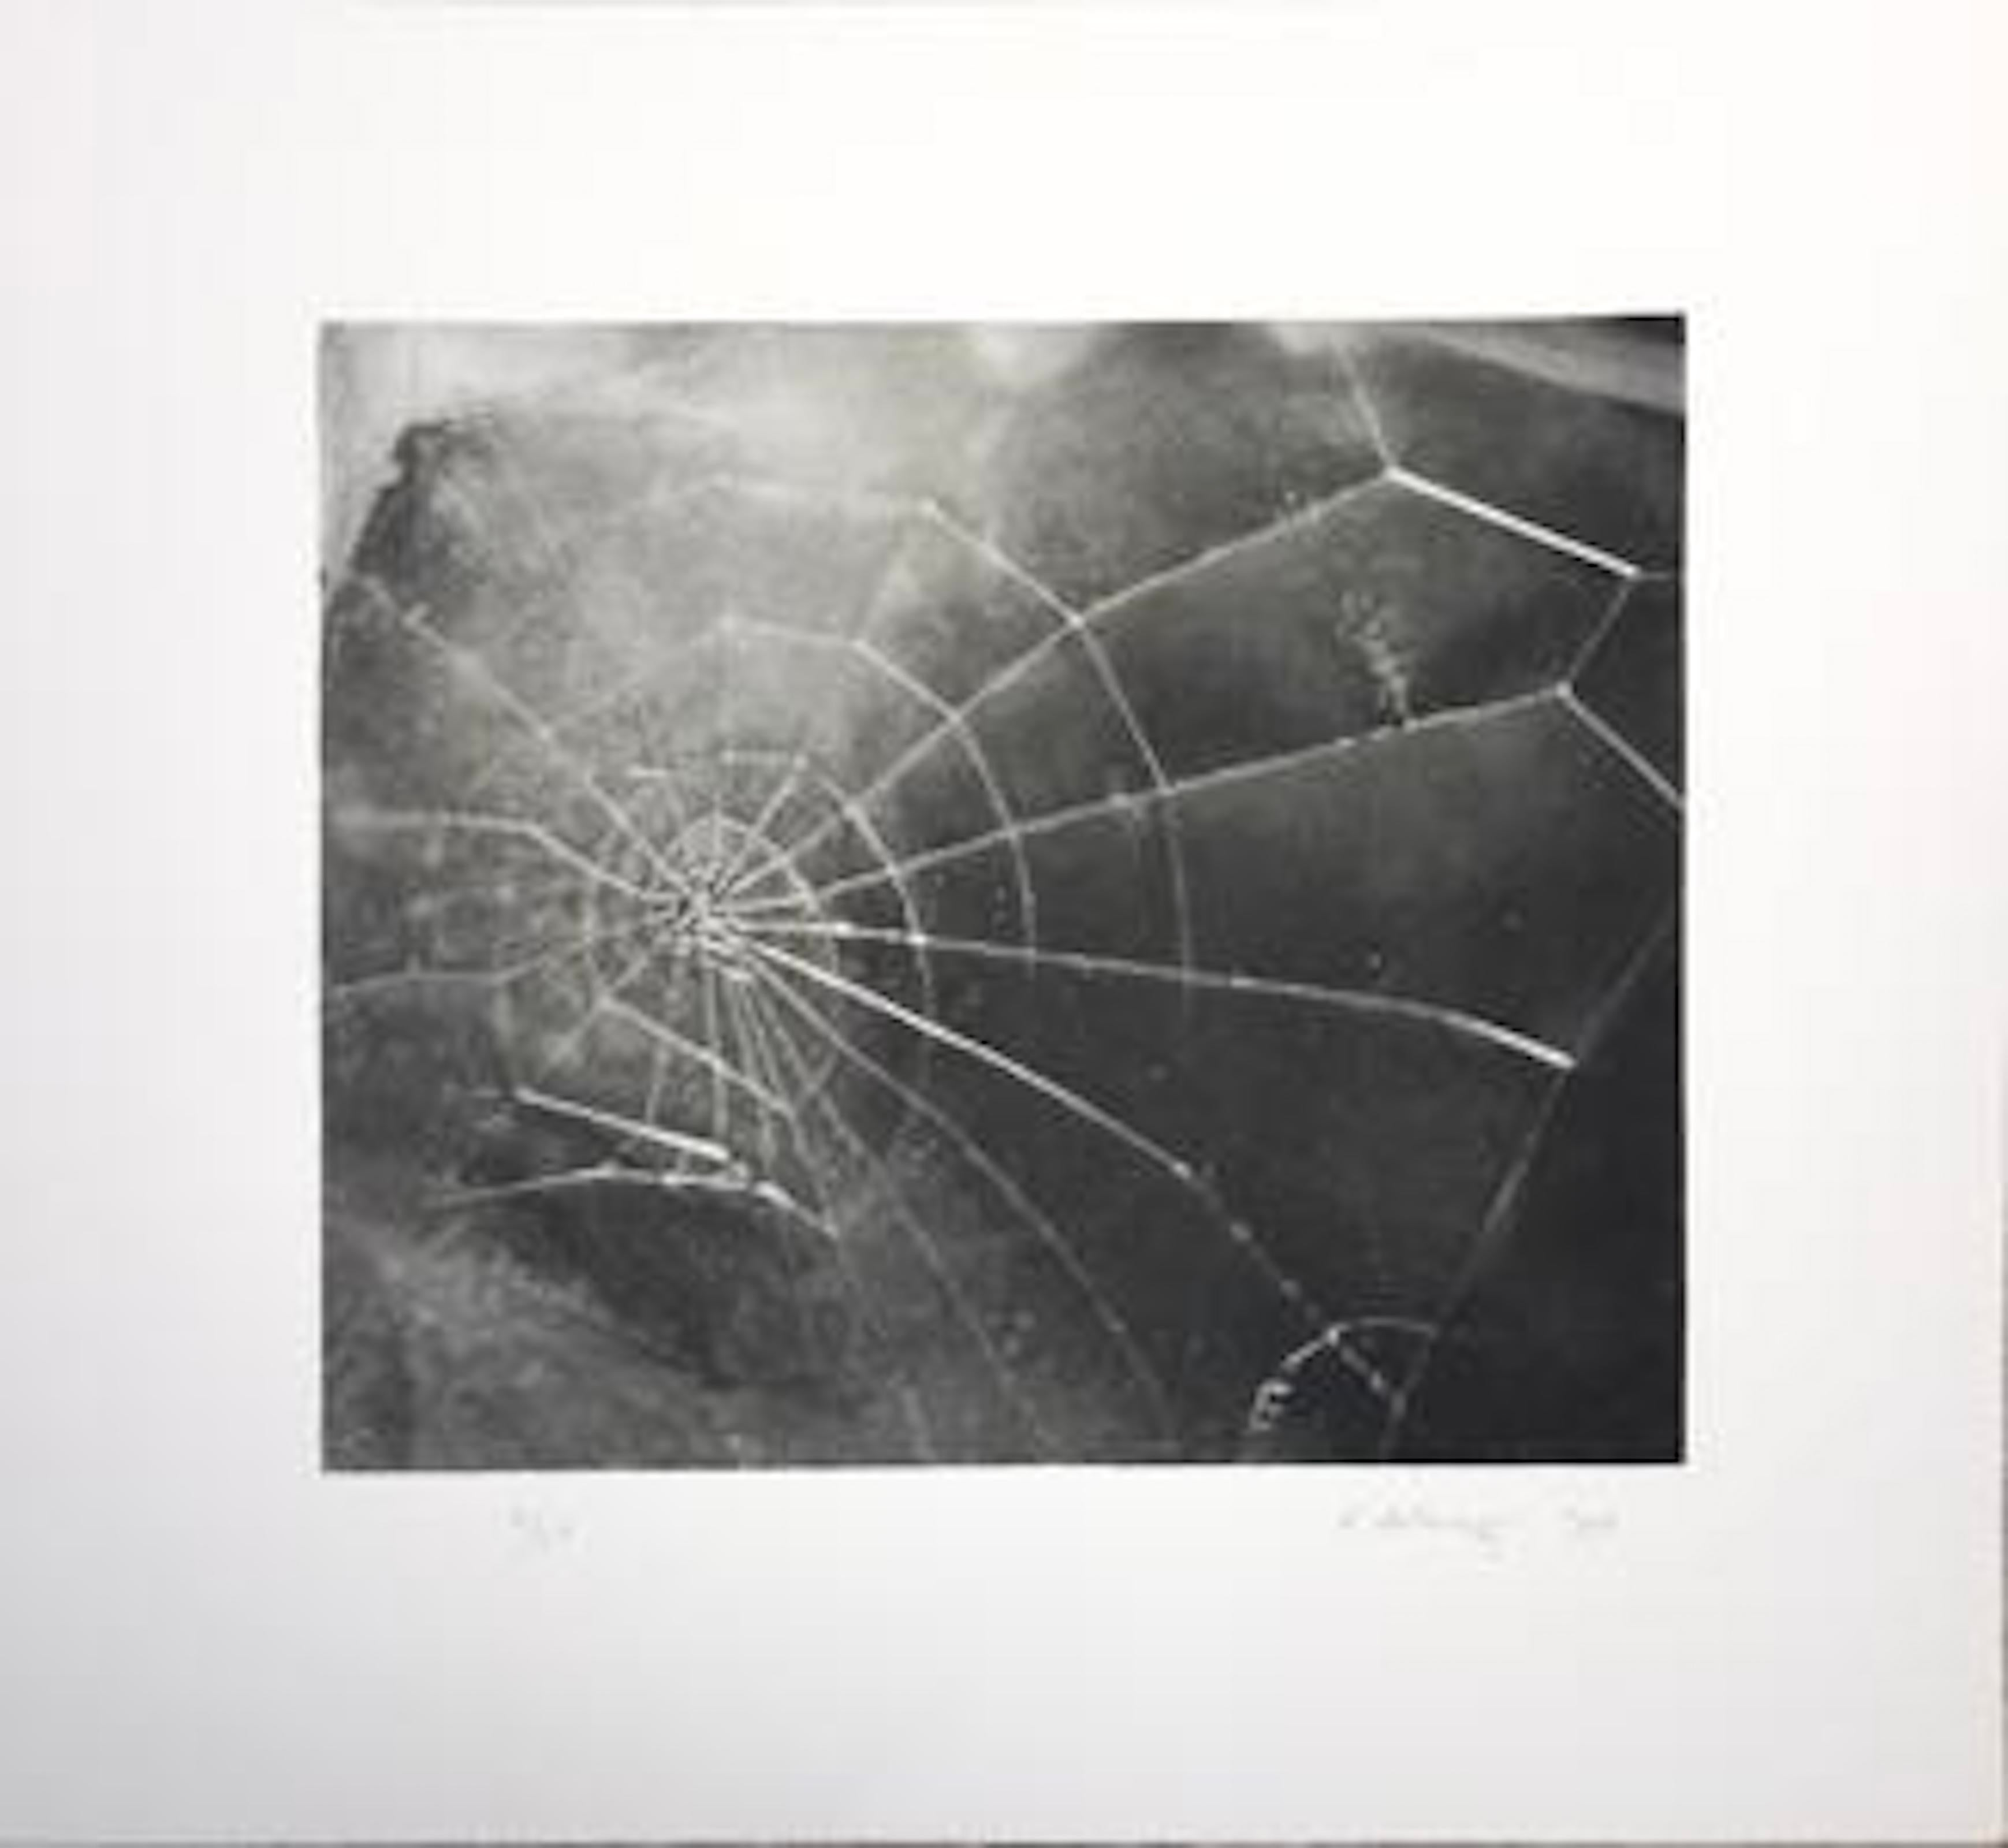 Spider Web; 2009; Screenprint; 17 1/2 x 19 inches; Edition of 117